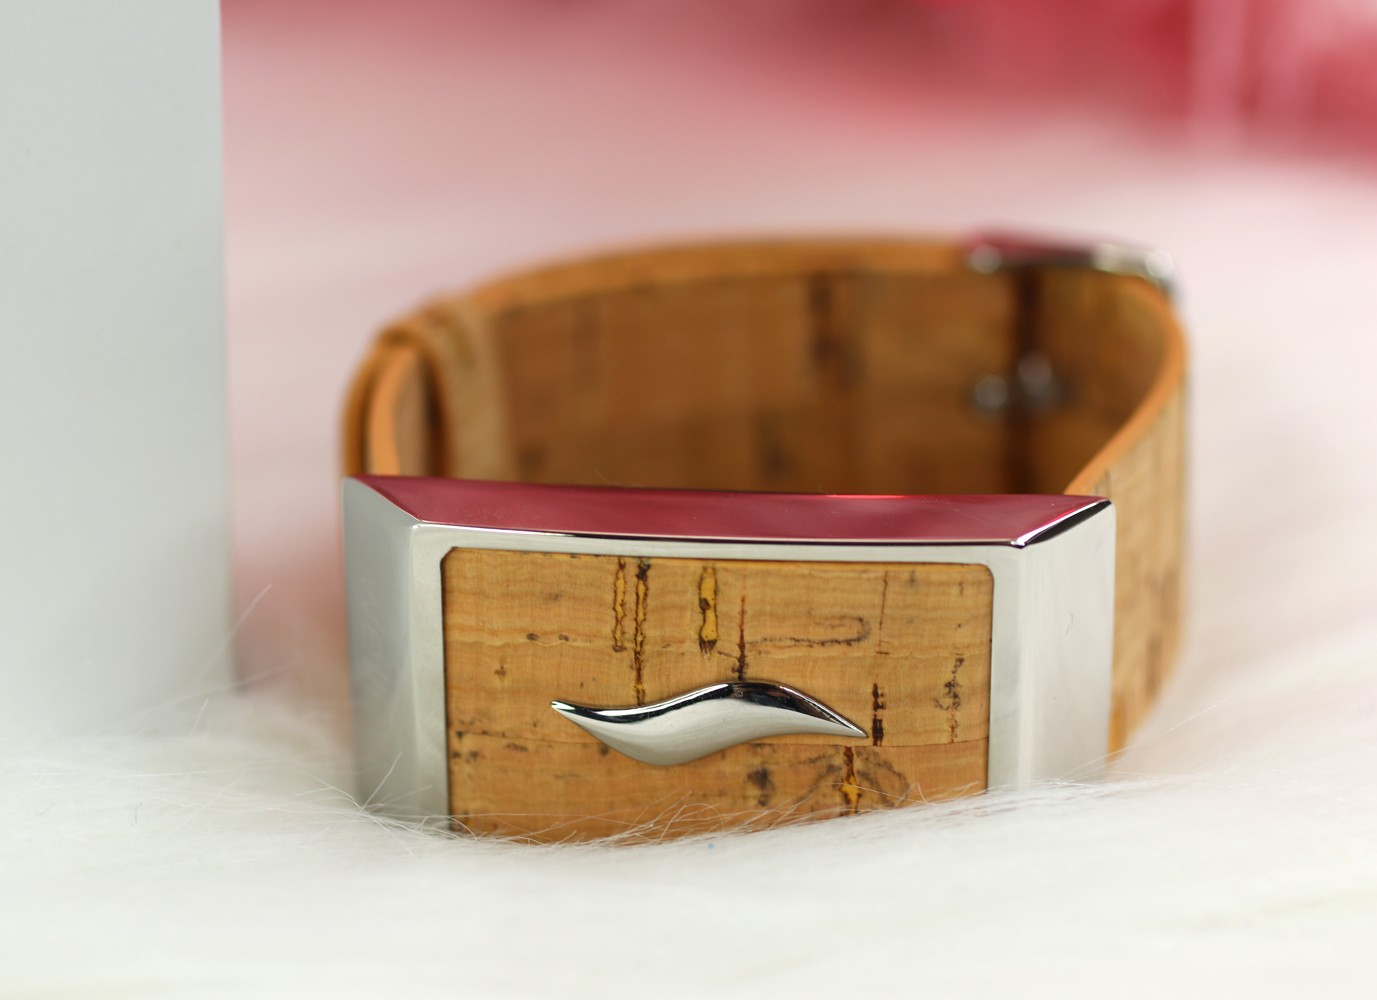 The WellBe Stress Balancing Bracelet